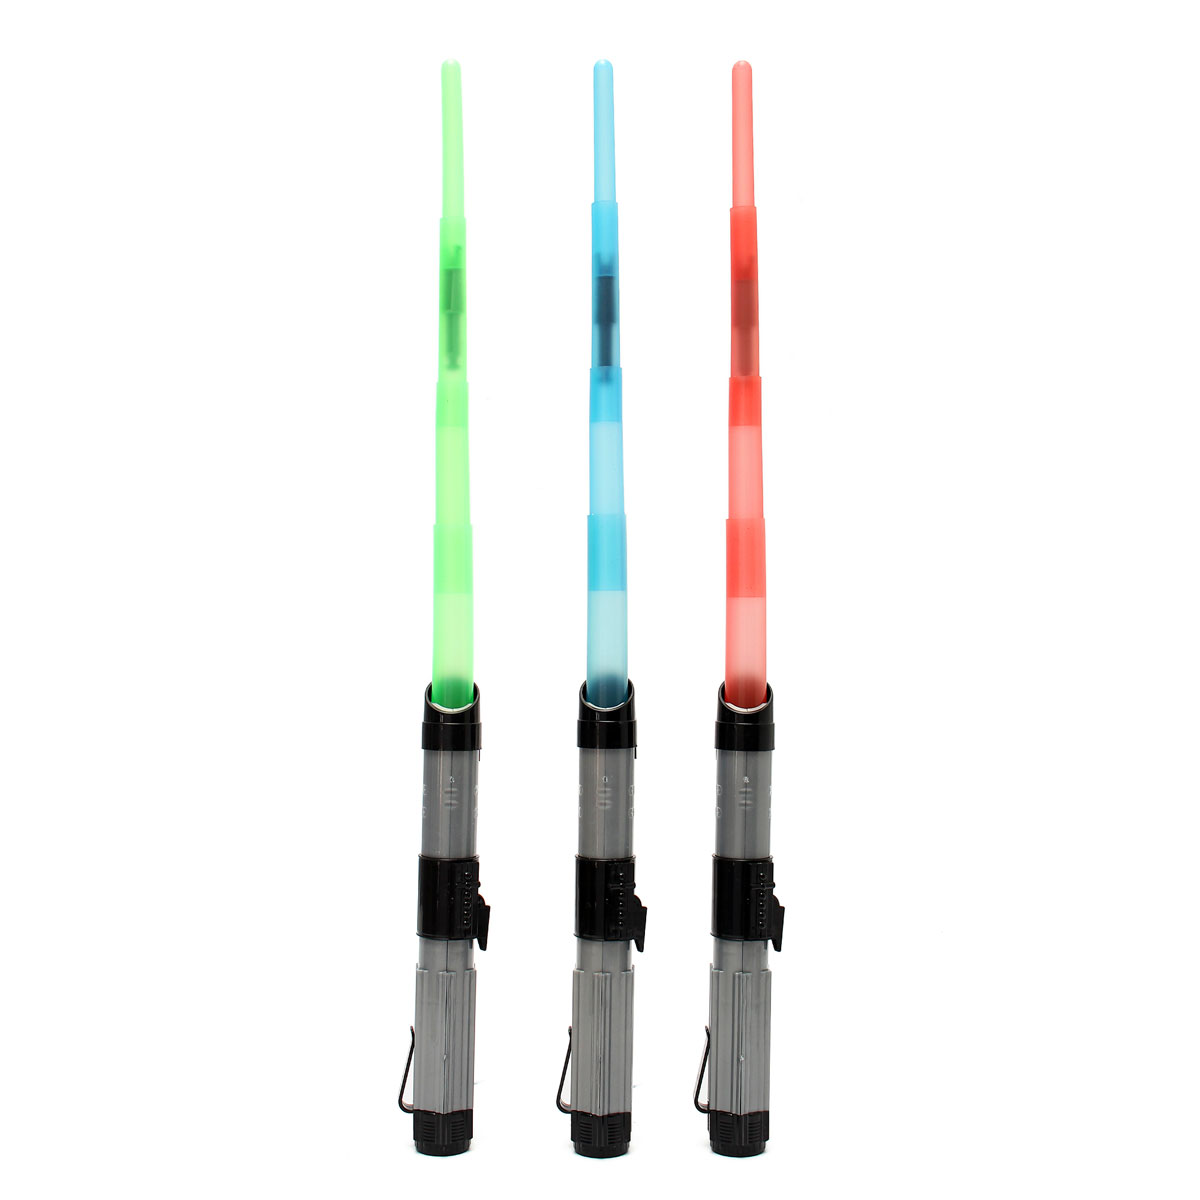 Lightsaber Light Saber Telescopic Sword Light Sound Cosplay Toy